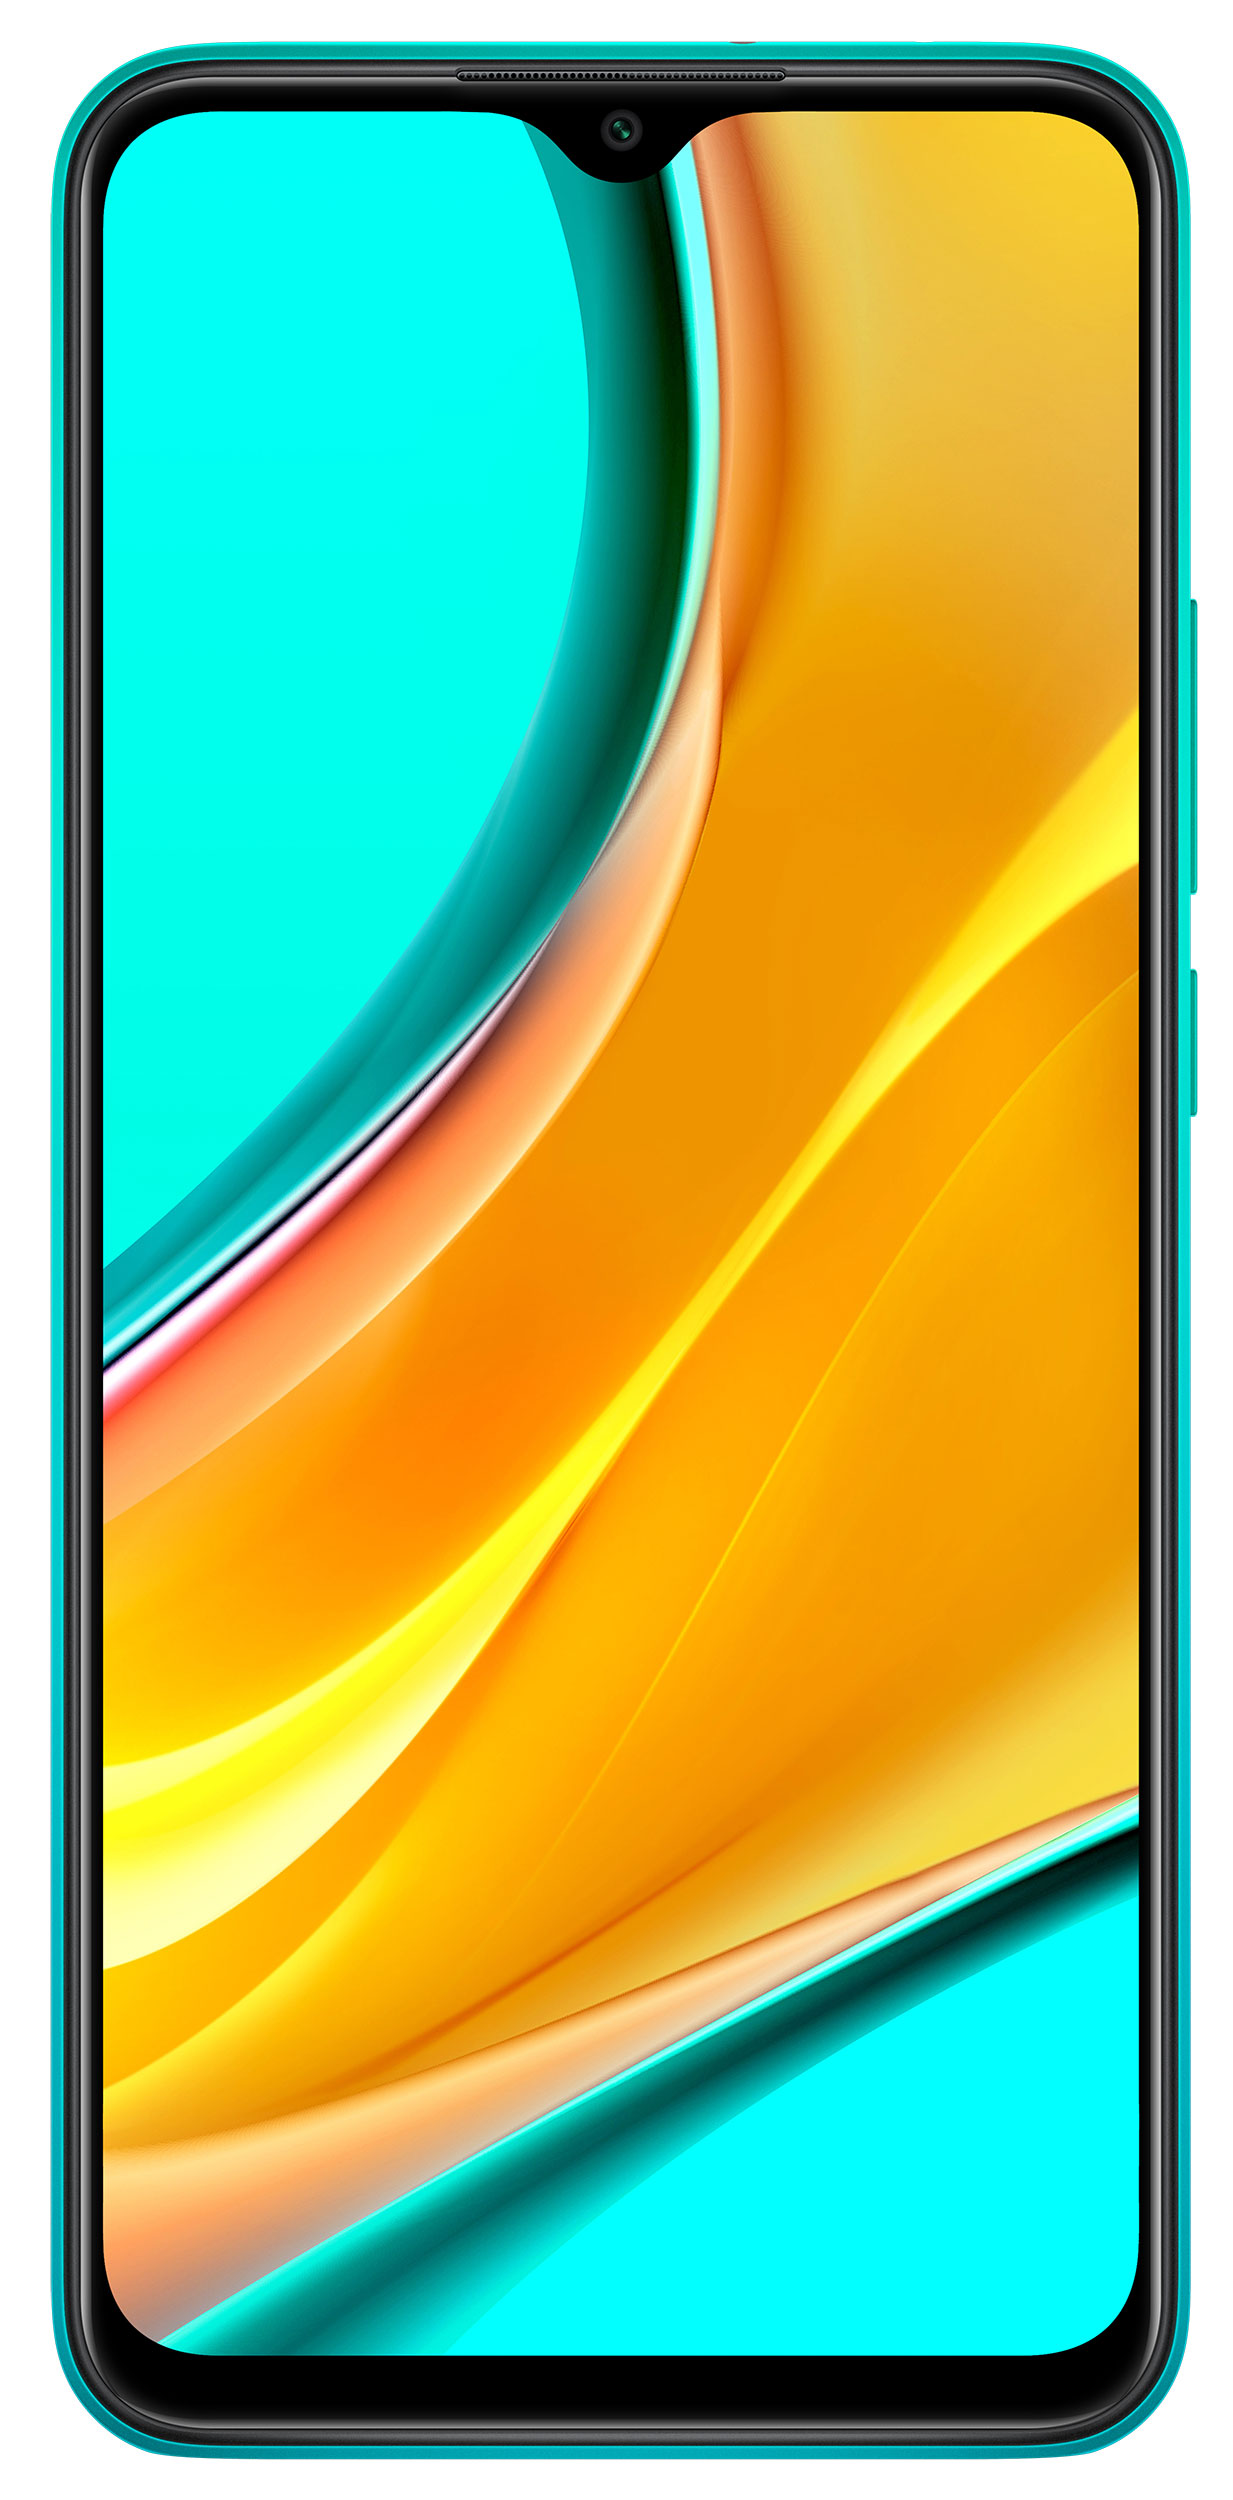 Redmi 9 okostelefon (Global) - 4+64GB, Óceánzöld